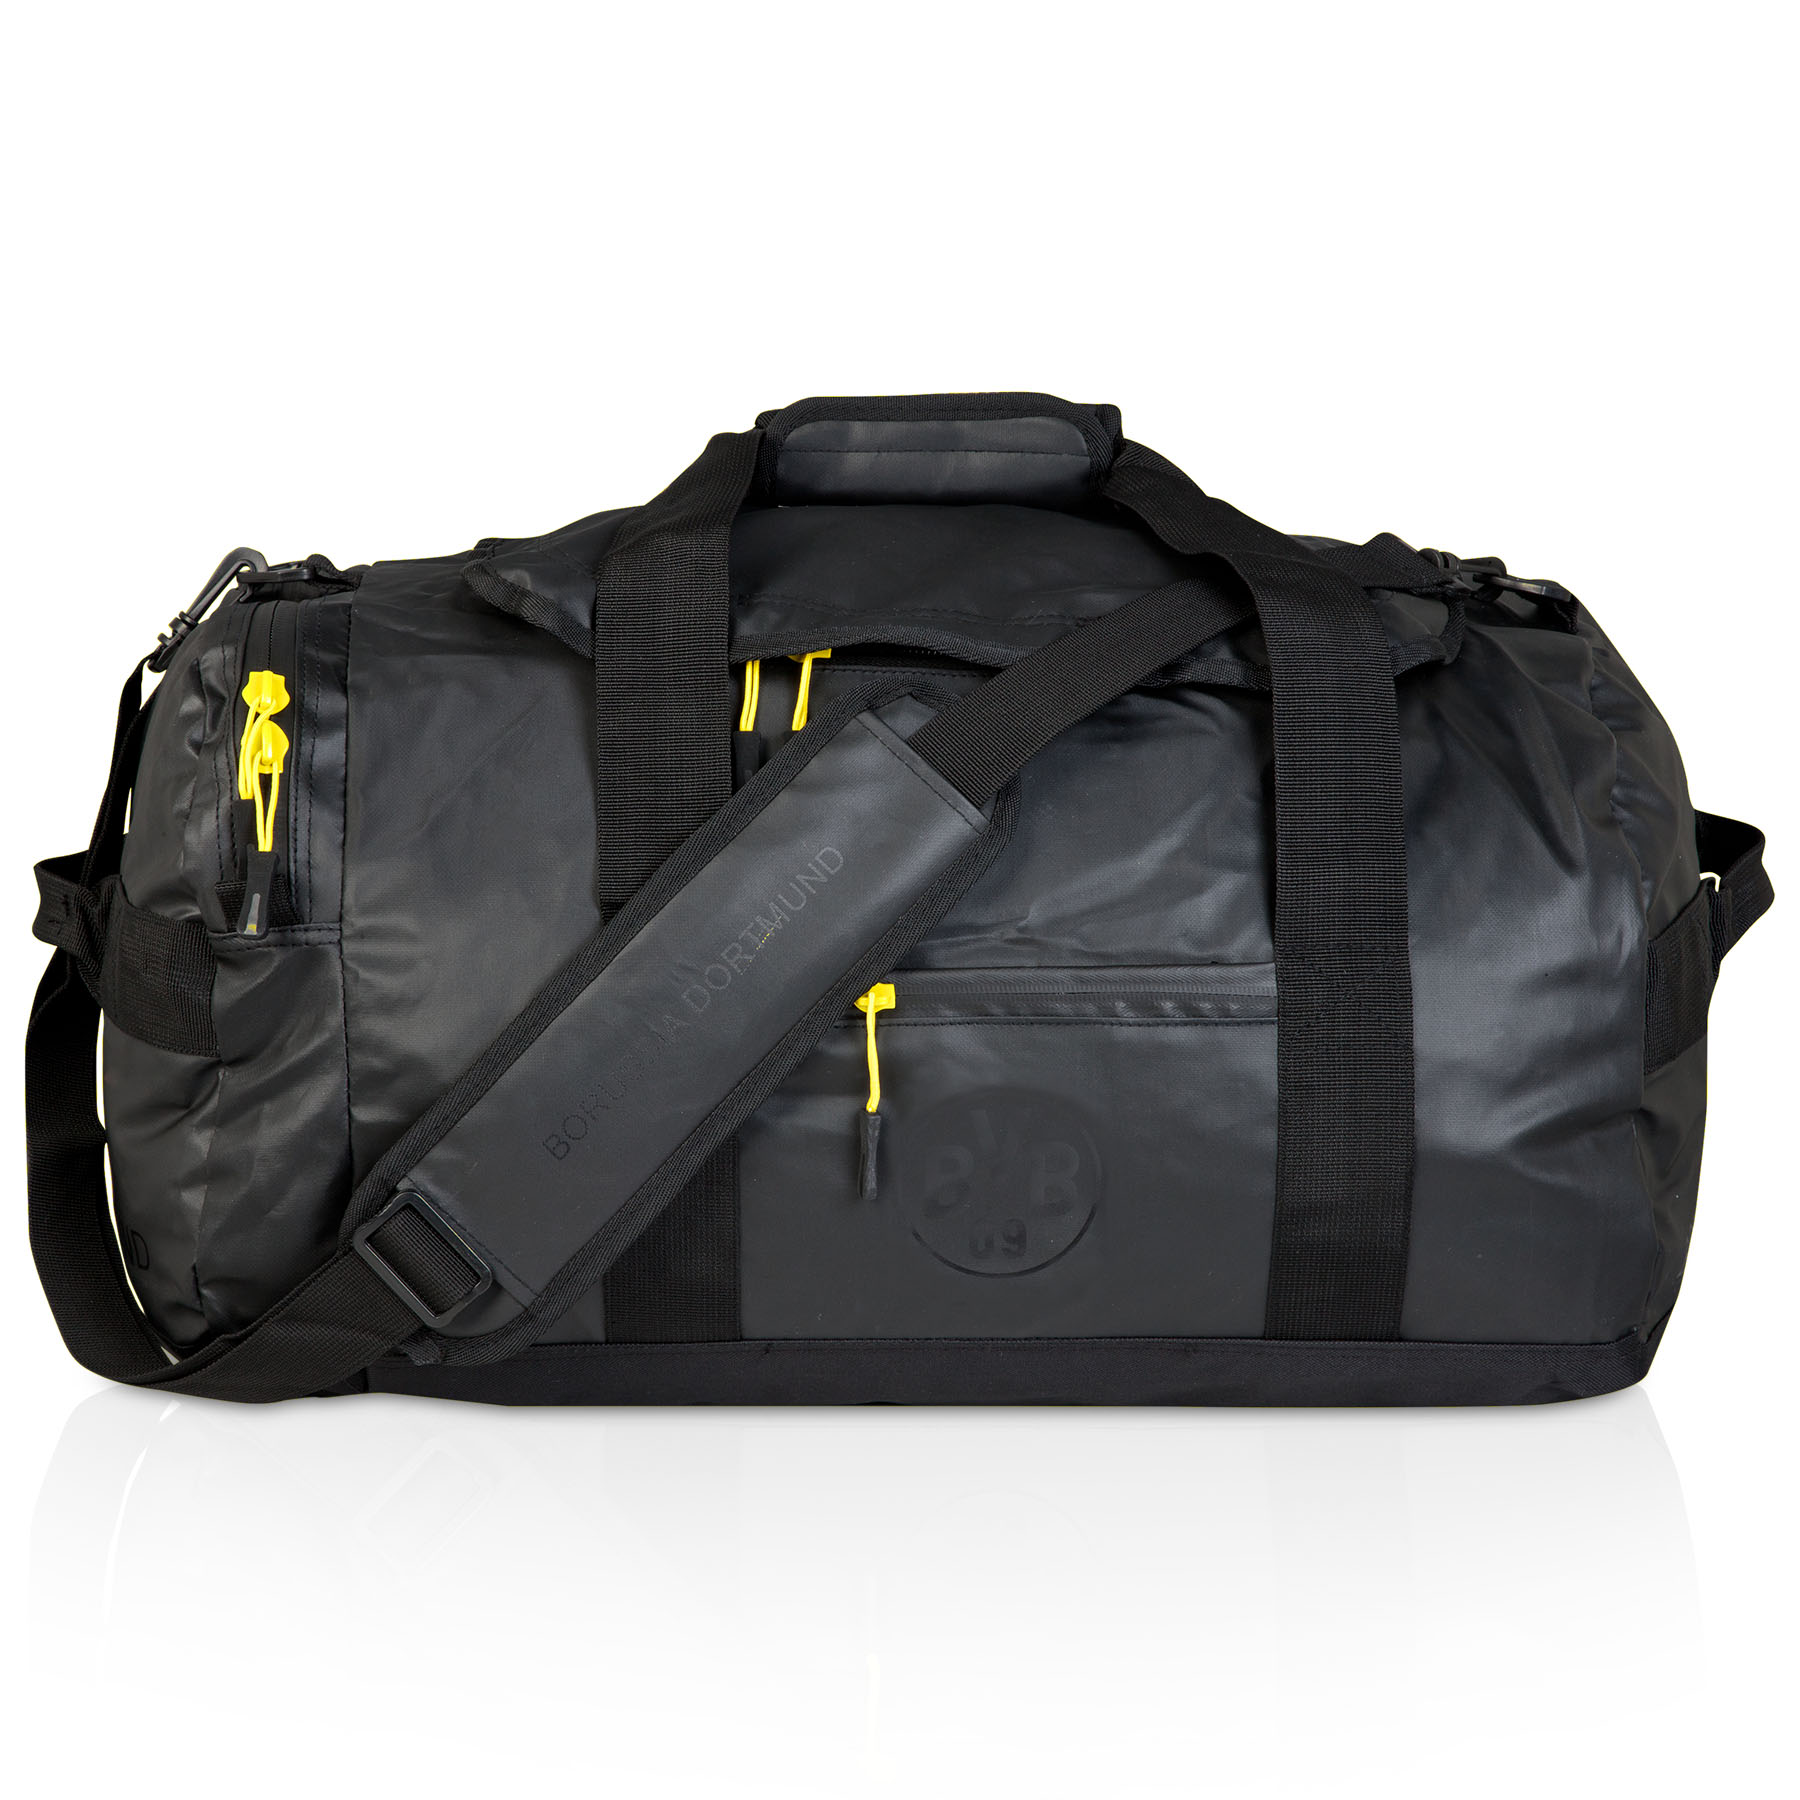 BVB Black Sports Bag